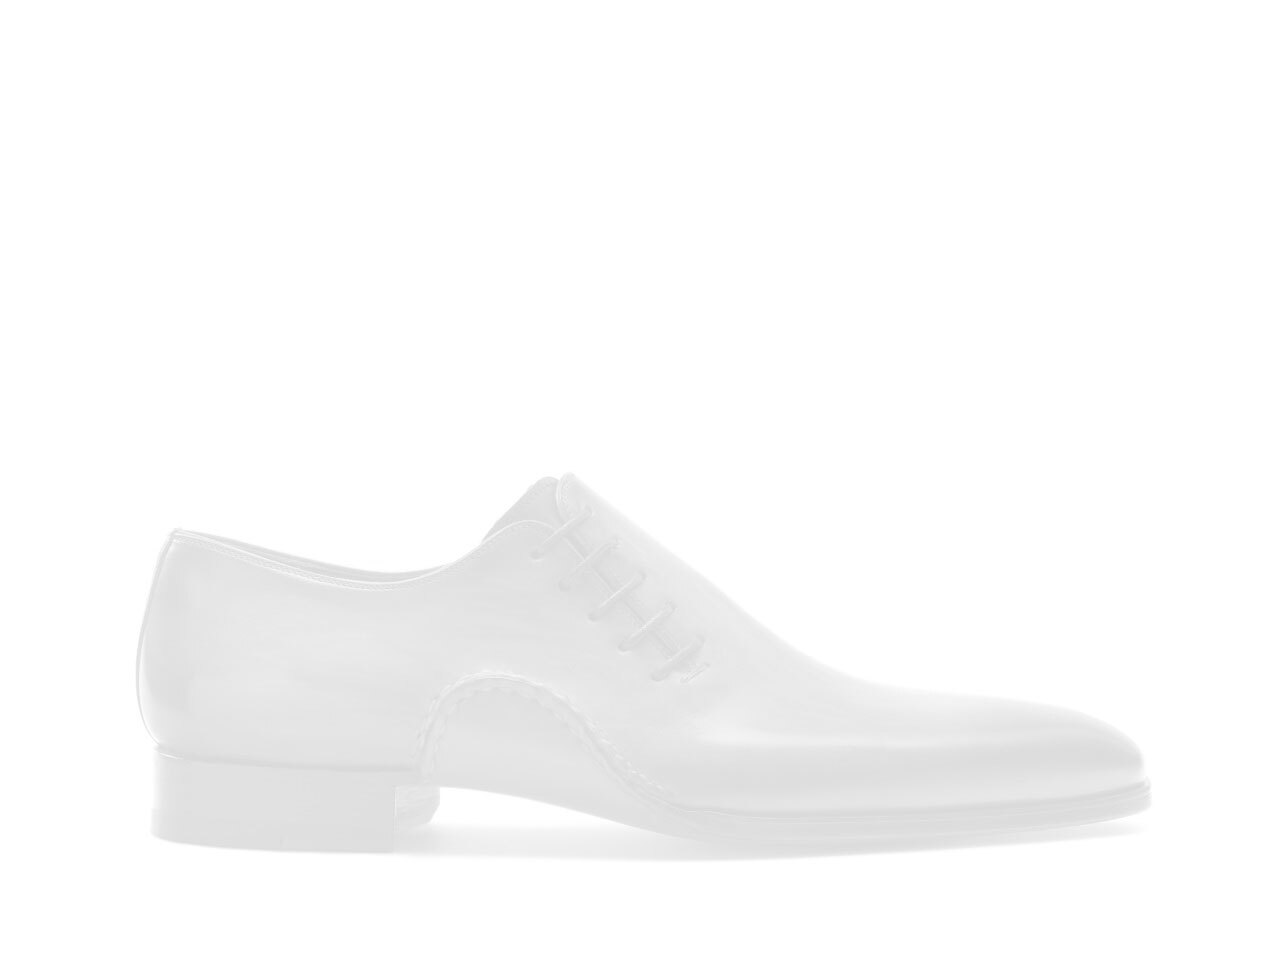 Side view of the Magnanni Loira Torba Suede Men's Driving Shoes